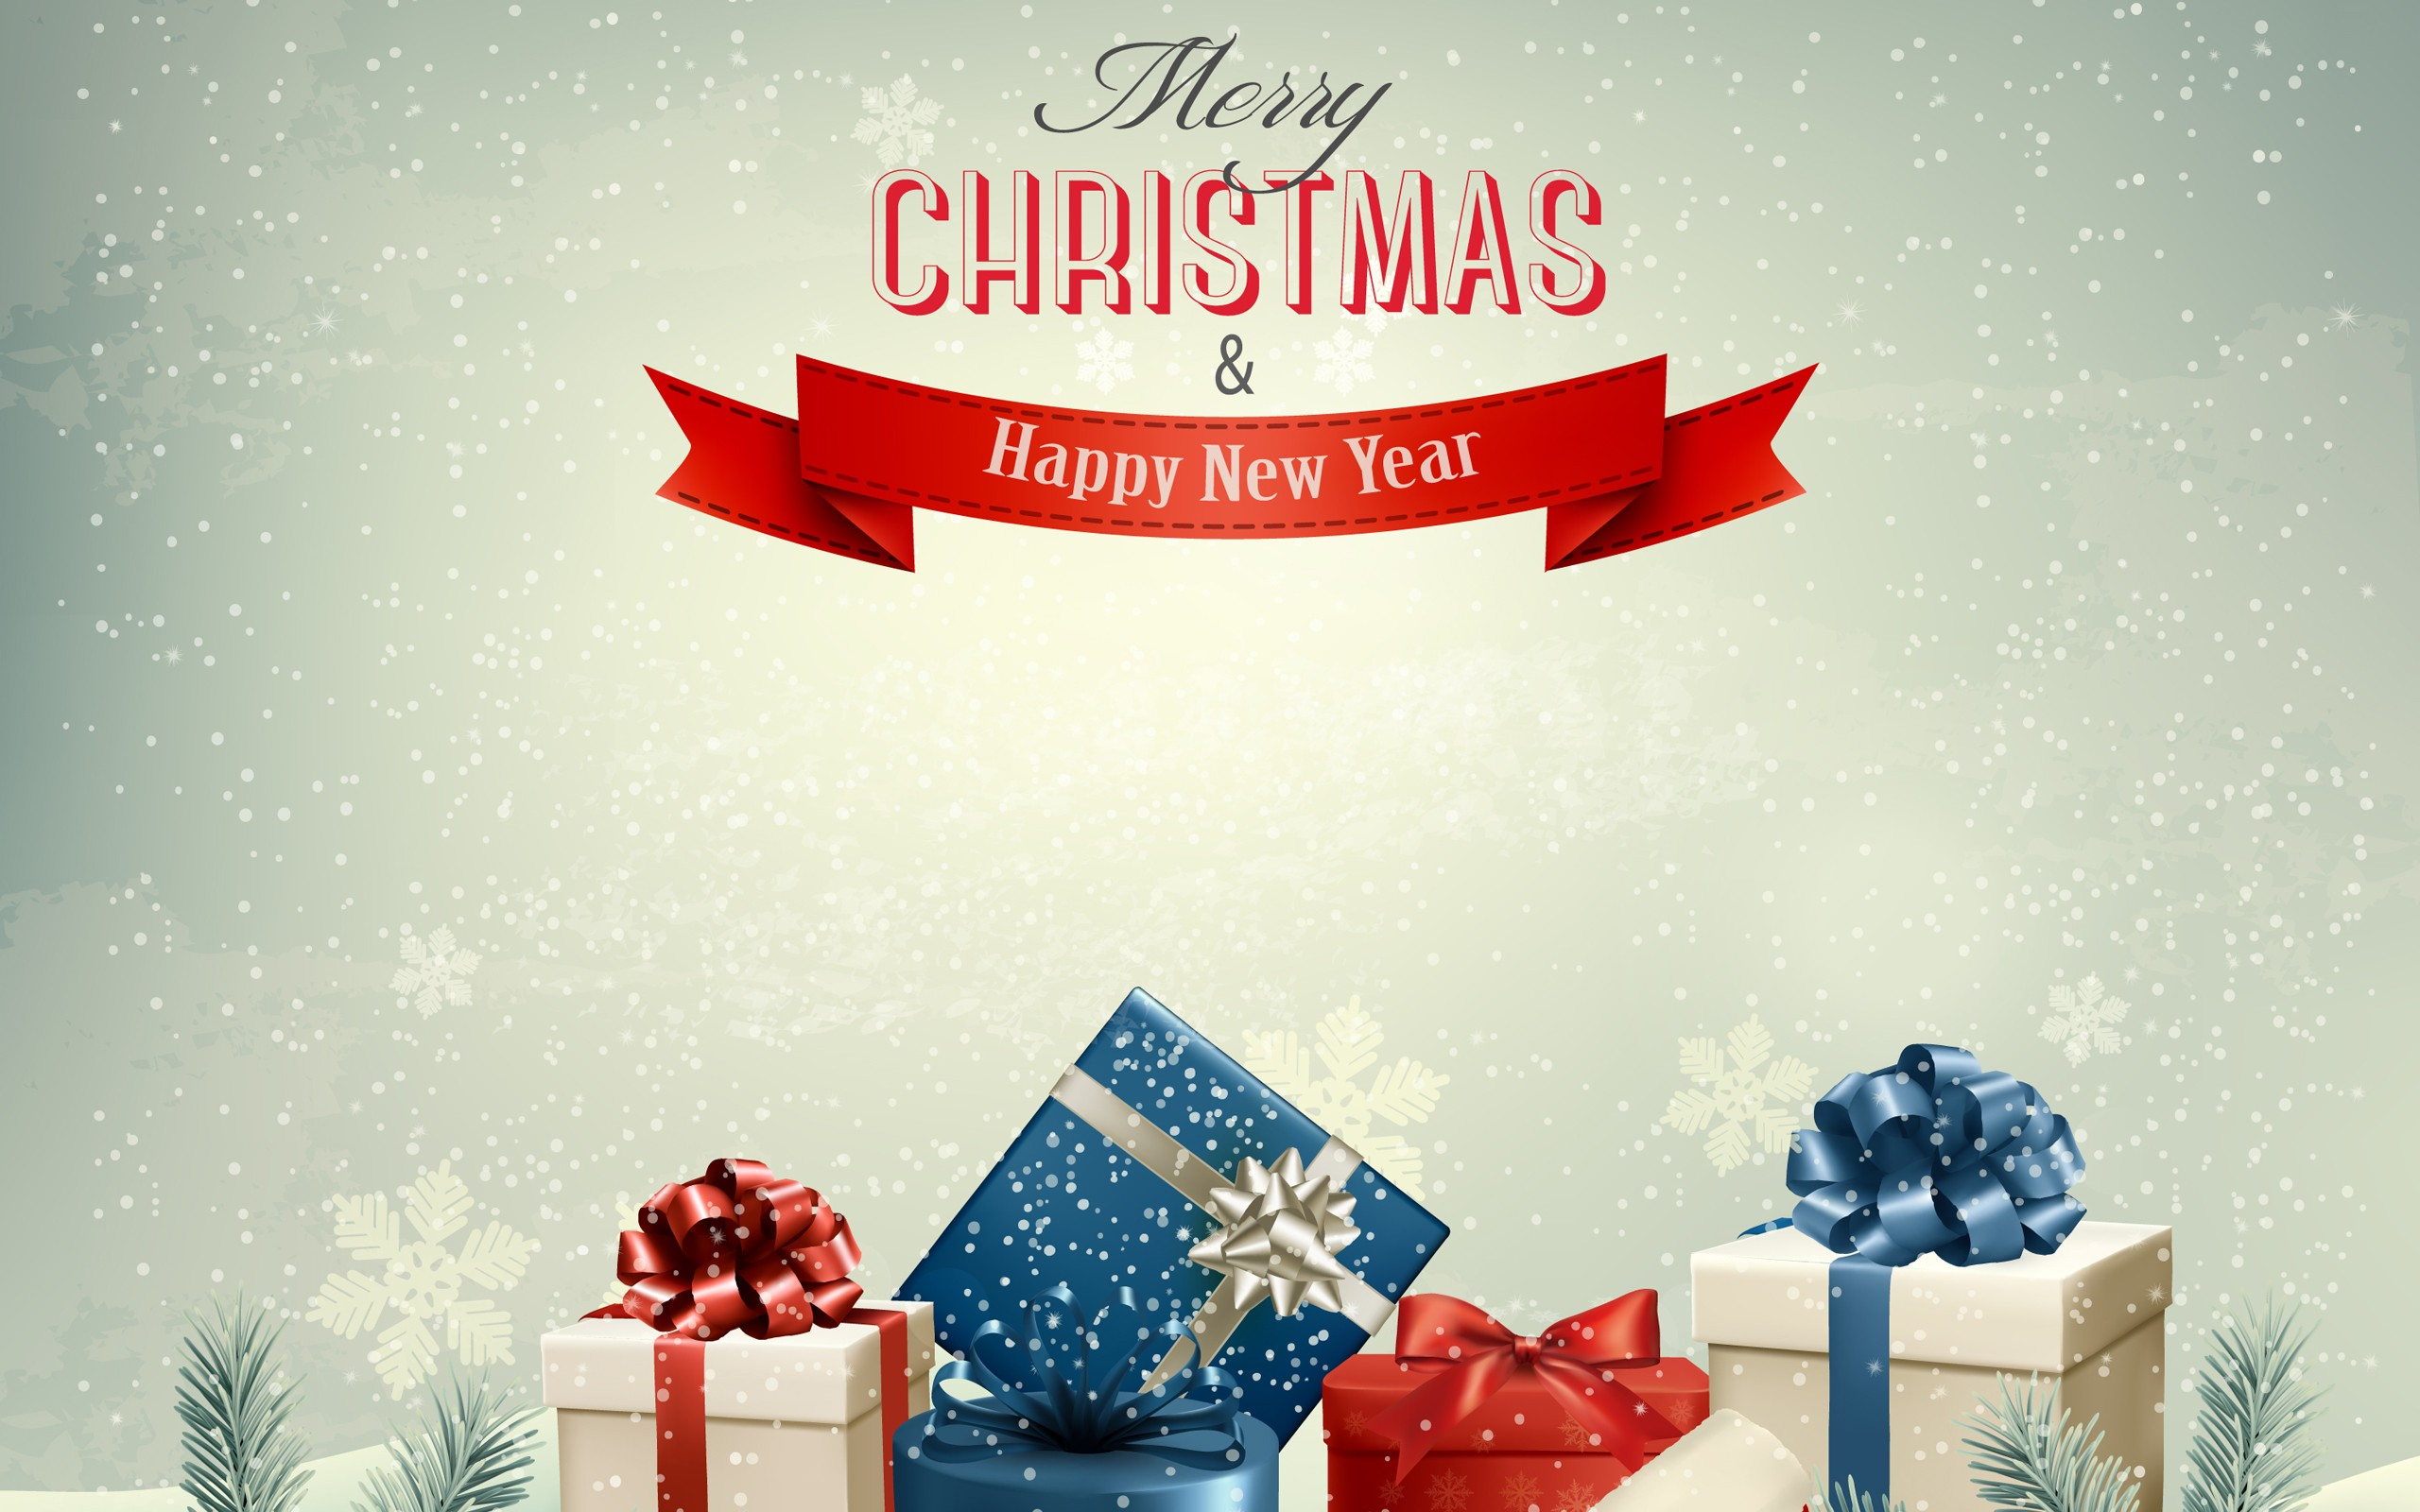 merry christmas and happy new year presents press the download button to save or desktop users right click to save or set as desktop background